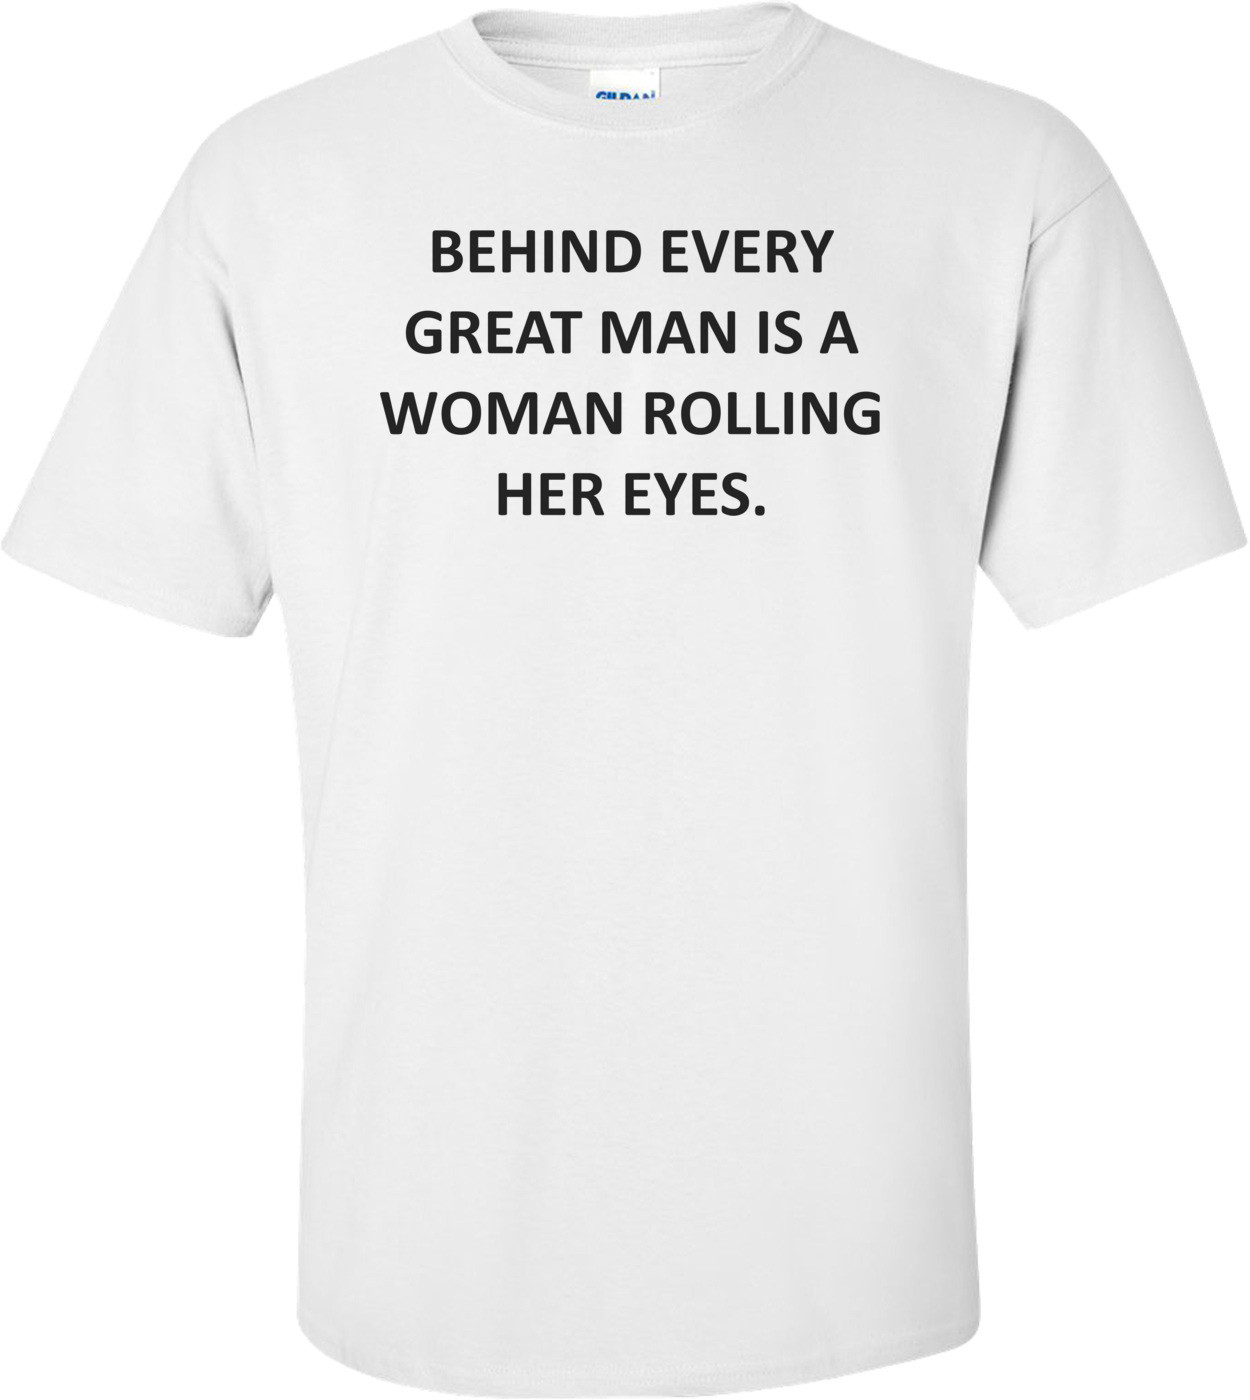 BEHIND EVERY GREAT MAN IS A WOMAN ROLLING HER EYES. Shirt